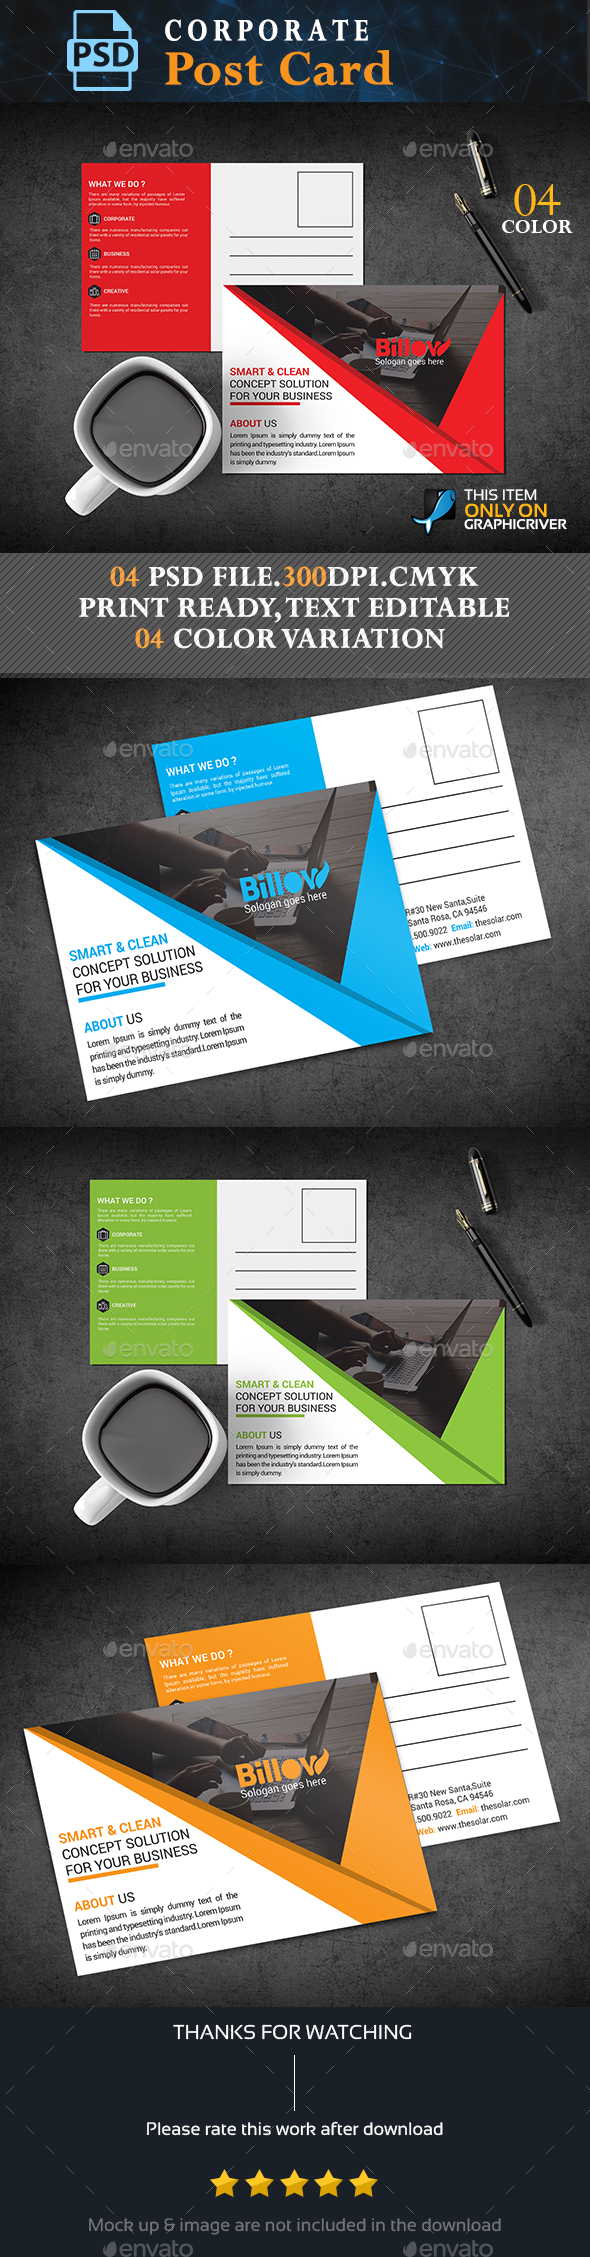 Corporate Post Card - Stationery Print Templates